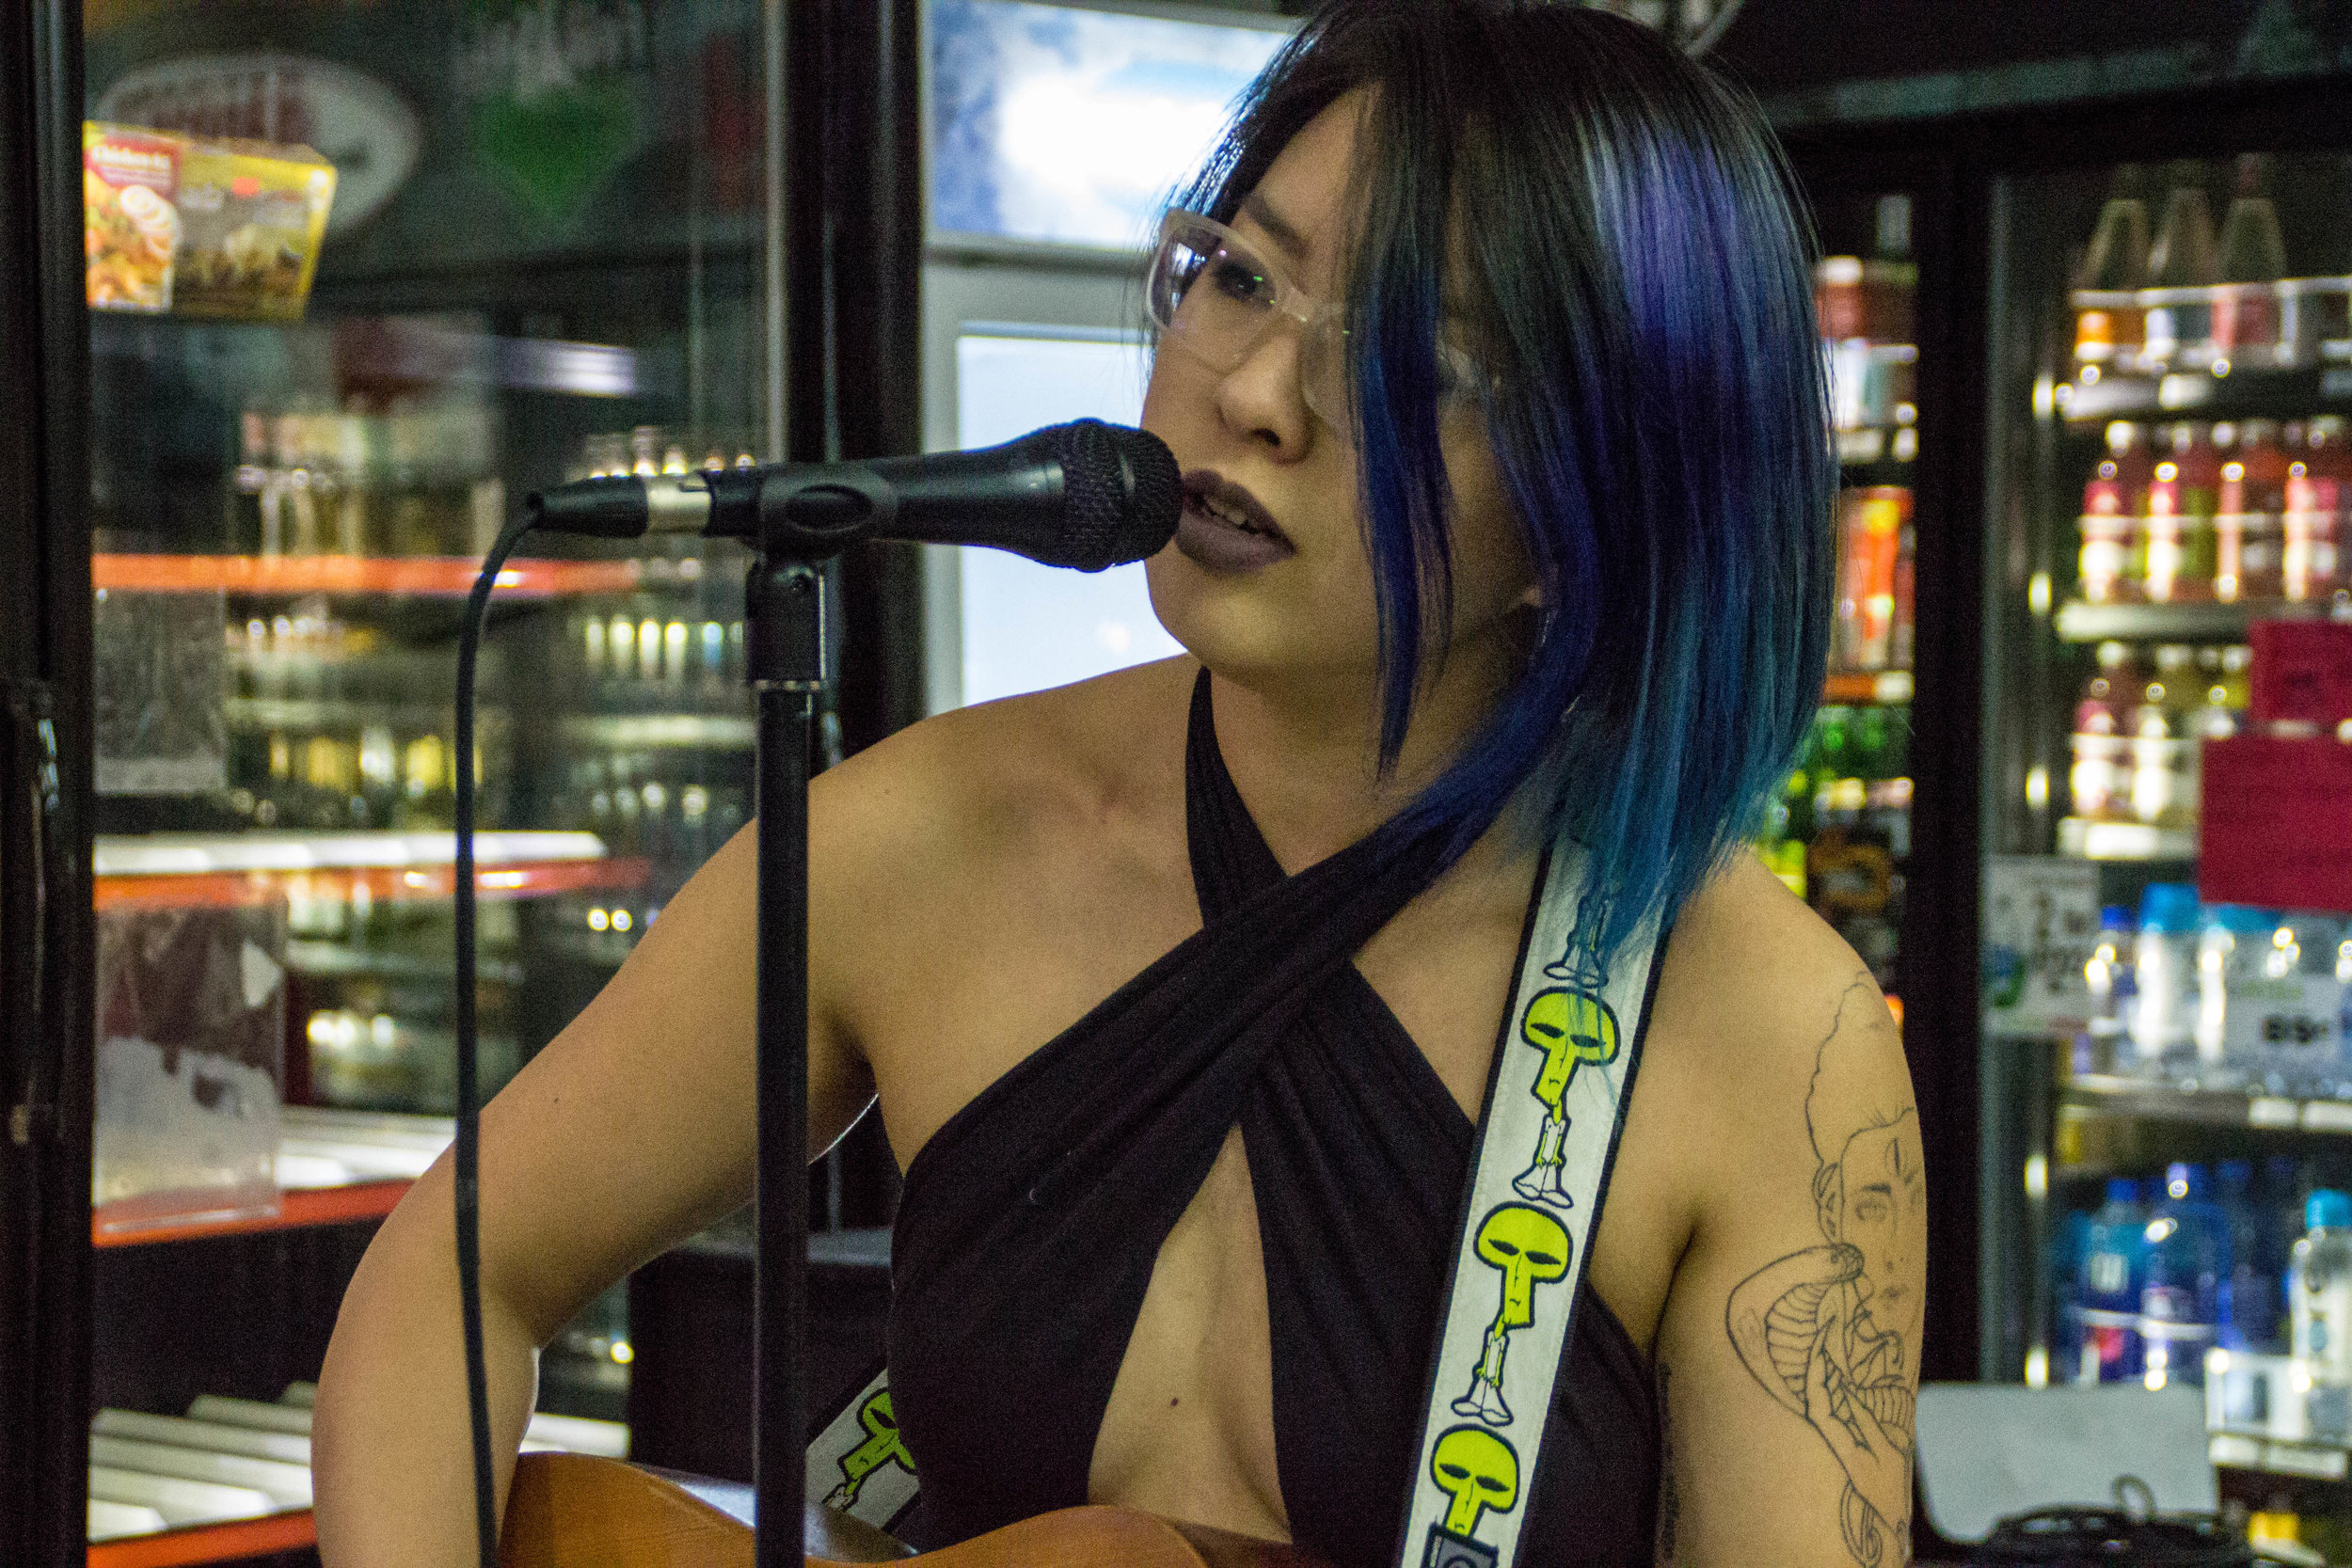 031817_Midway Craft House, Denton  TX_Lydia Low and the Booze Bunnies-1.jpg